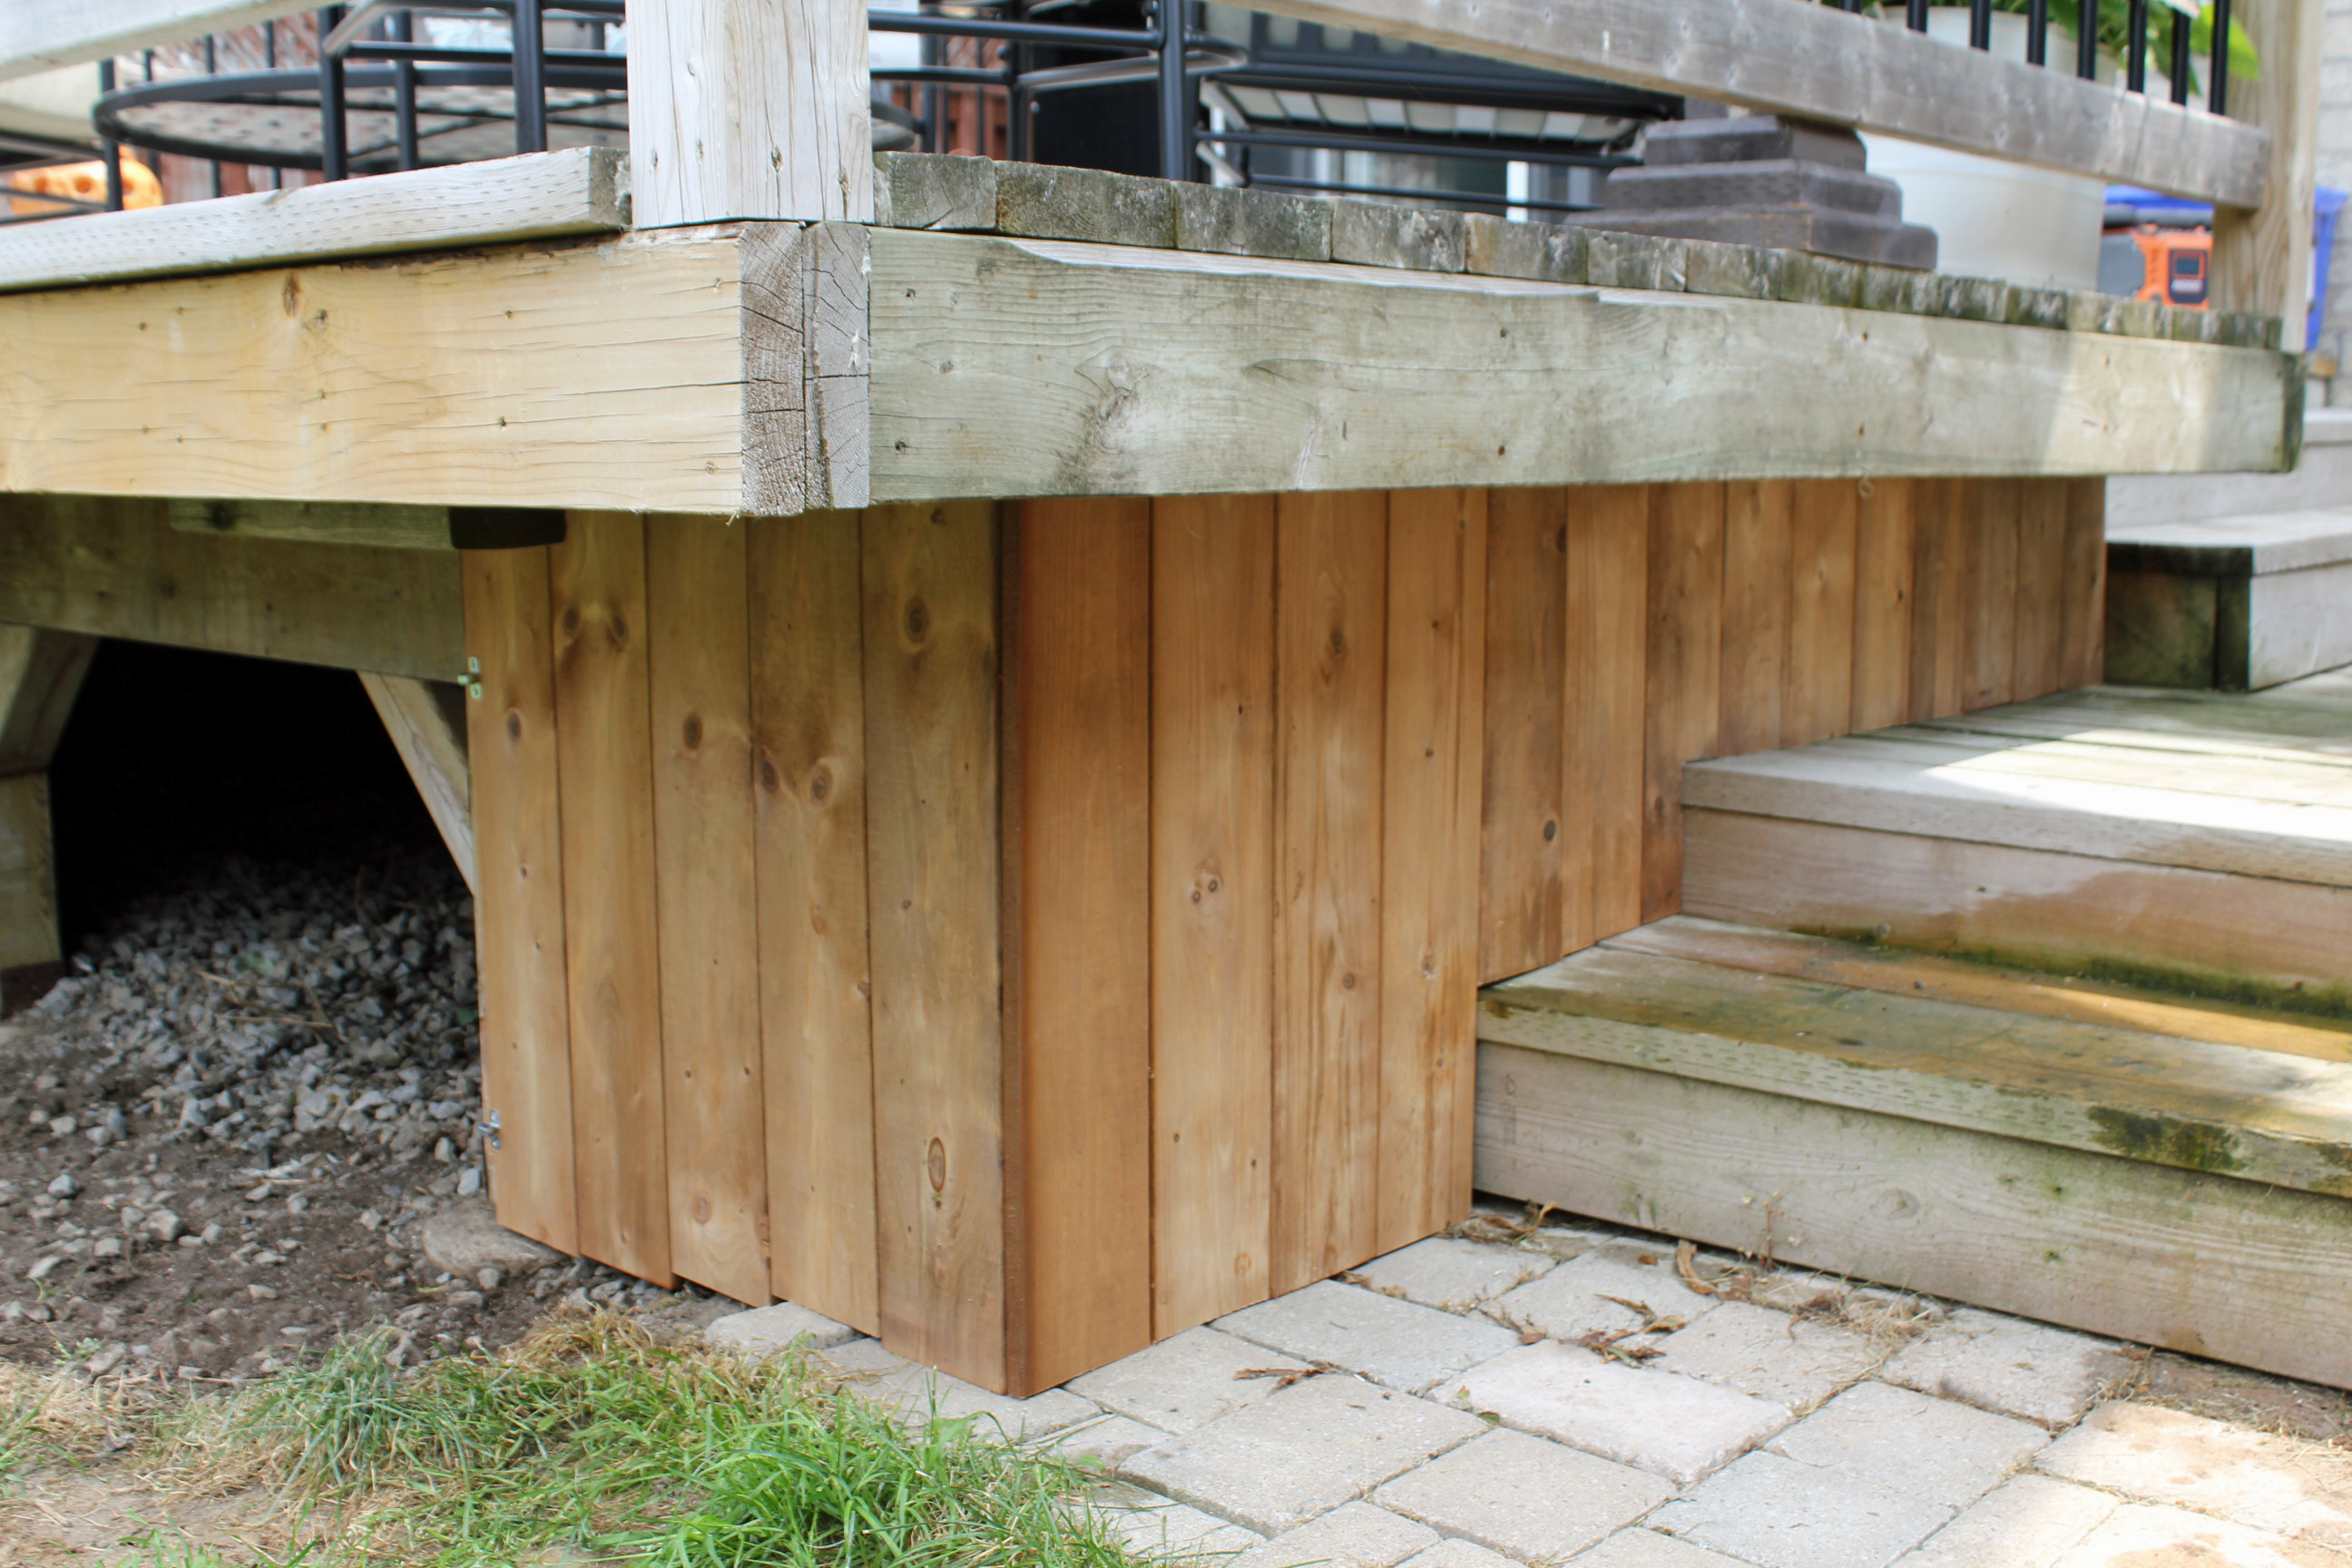 Turtles and tails under deck enclosure with access door for Balcony underside